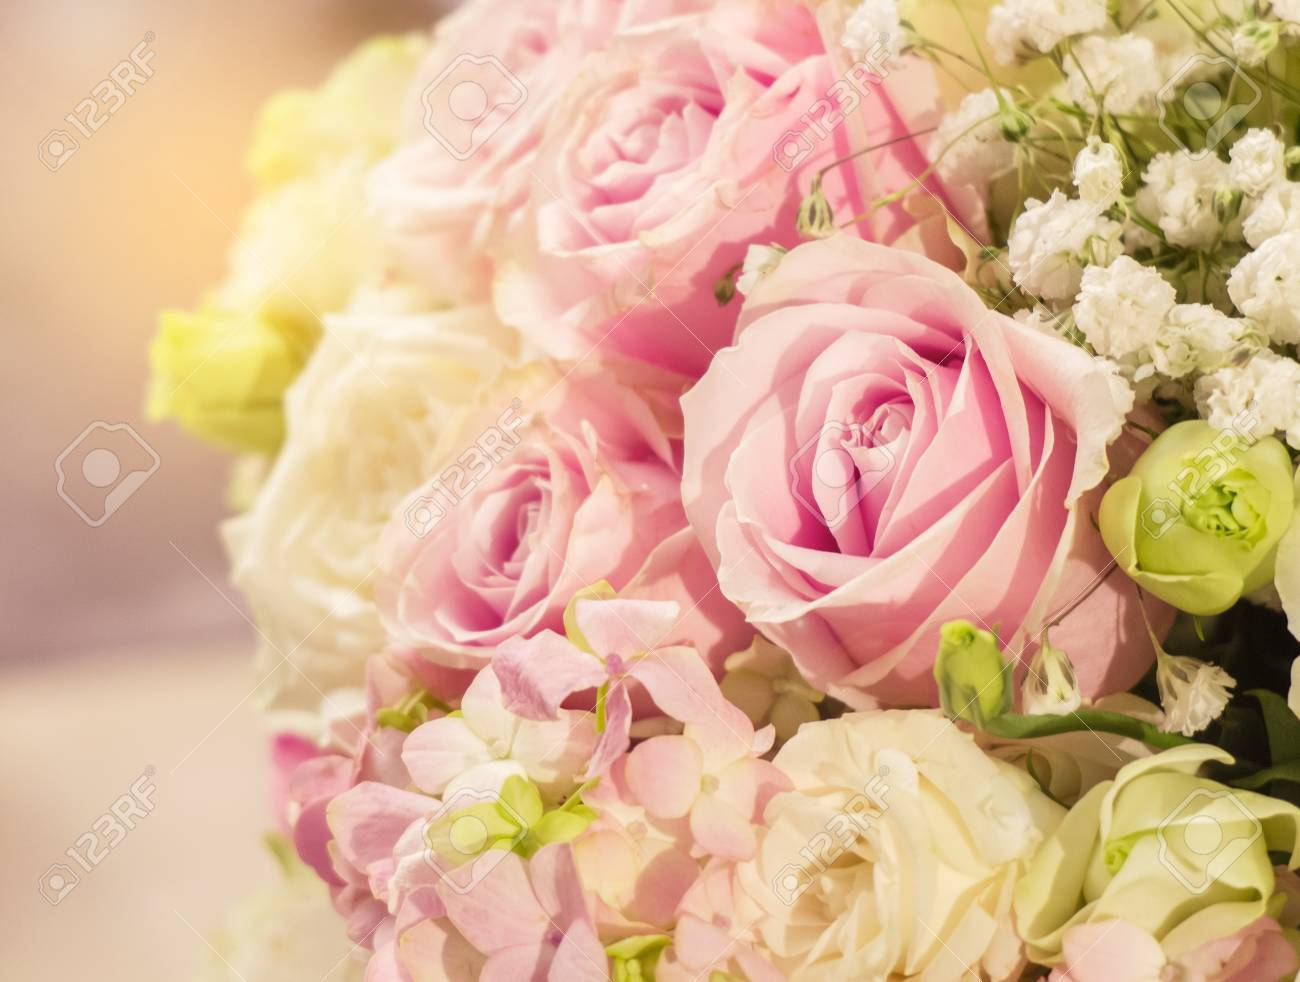 The Beautiful Romantic Pink Rose Pattern In The Big Bouquet Of Stock Photo Picture And Royalty Free Image Image 68969644